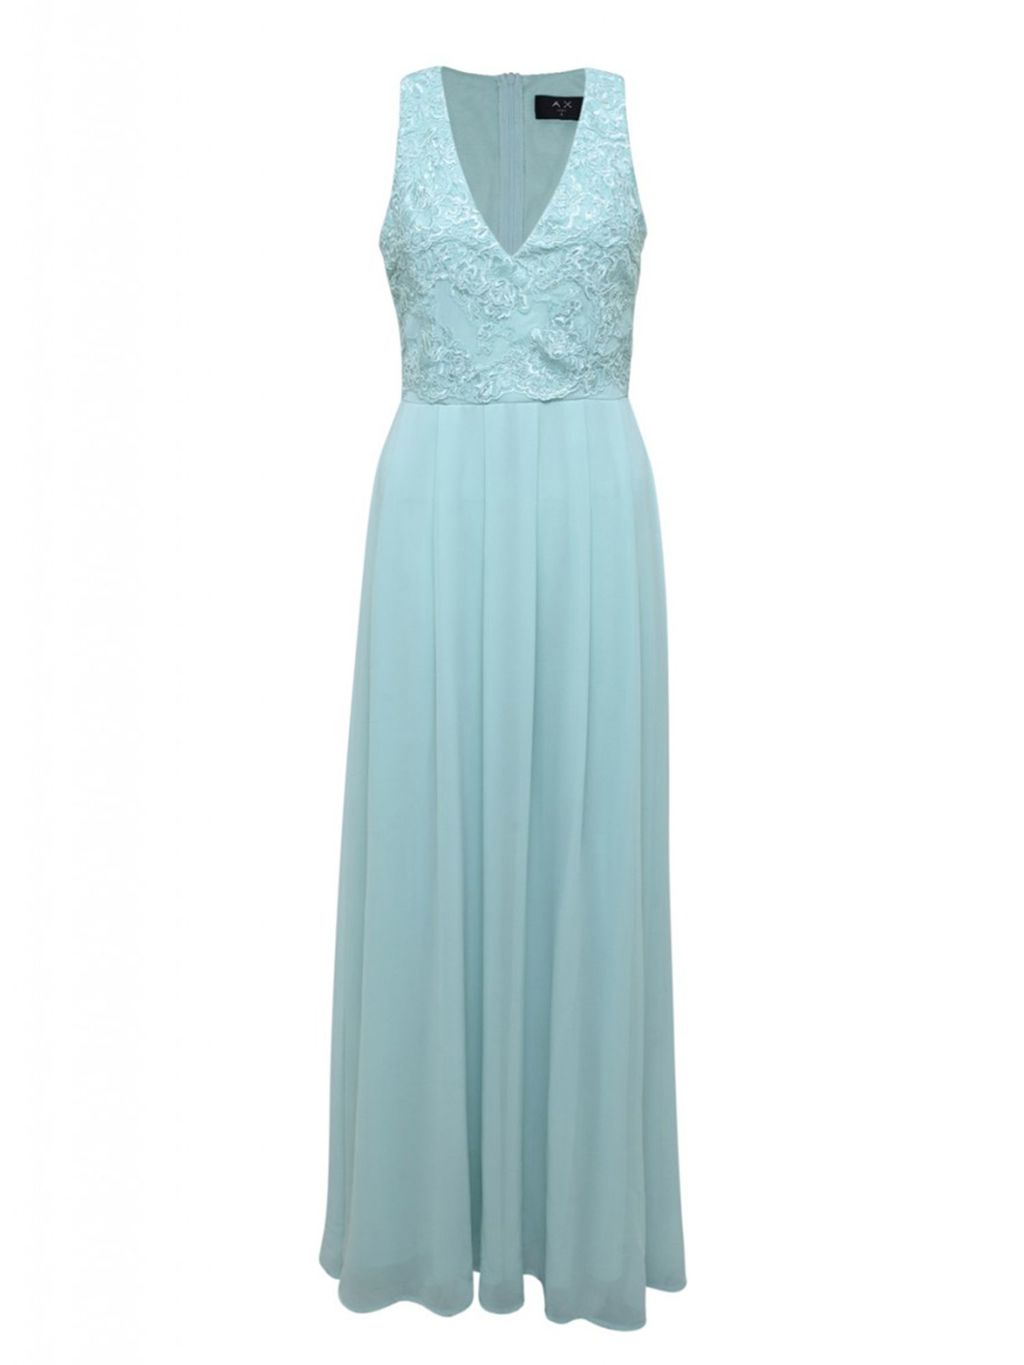 Lace Top Maxi Dress, Blue - neckline: low v-neck; pattern: plain; sleeve style: sleeveless; style: maxi dress; predominant colour: pale blue; length: floor length; fit: fitted at waist & bust; fibres: polyester/polyamide - 100%; occasions: occasion; sleeve length: sleeveless; pattern type: fabric; texture group: other - light to midweight; embellishment: lace; season: s/s 2016; wardrobe: event; embellishment location: bust